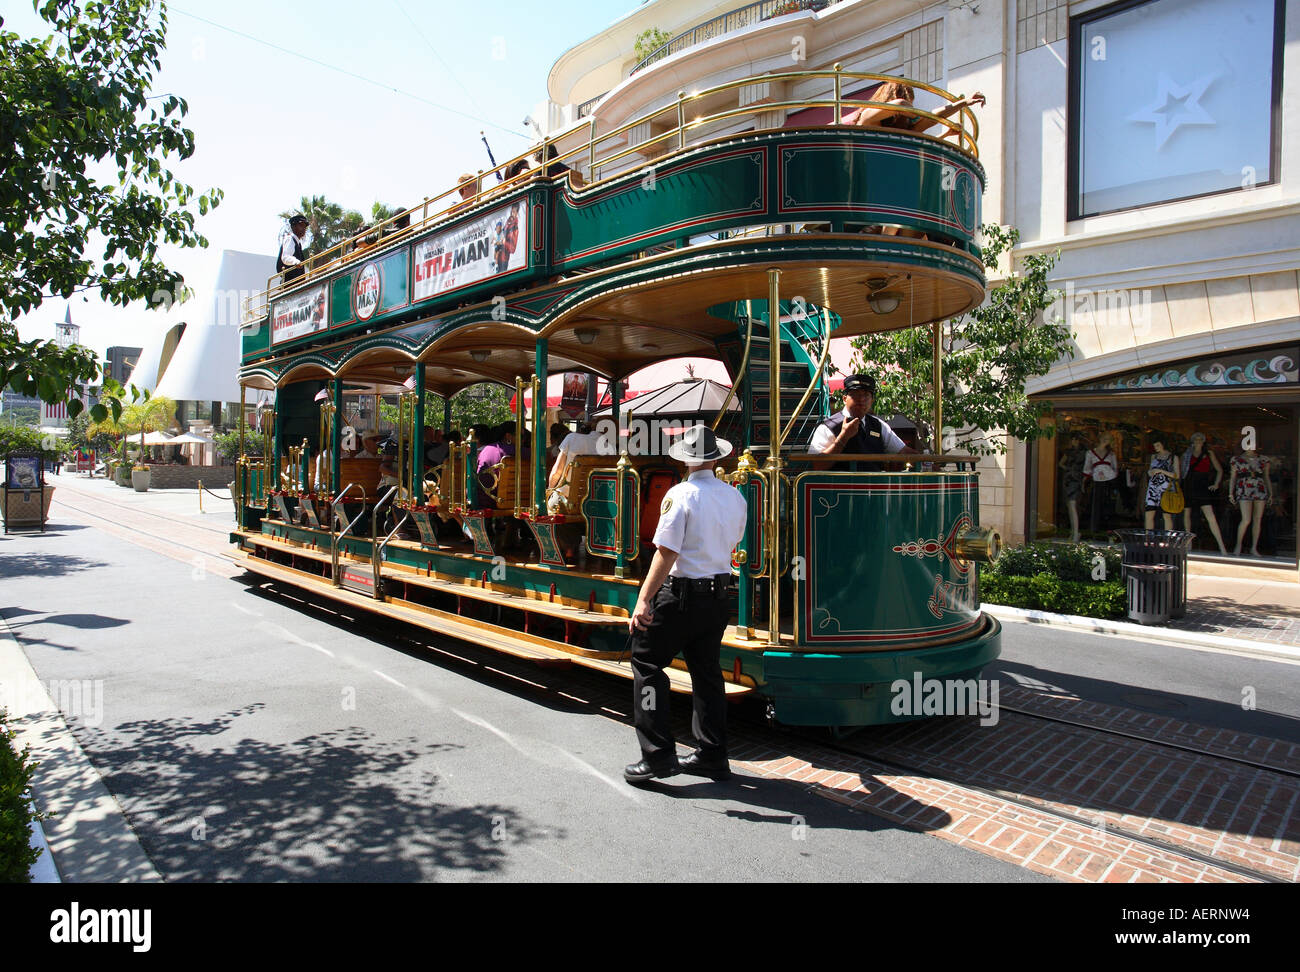 The trolley bus at The Grove shopping area near the Farmers Market